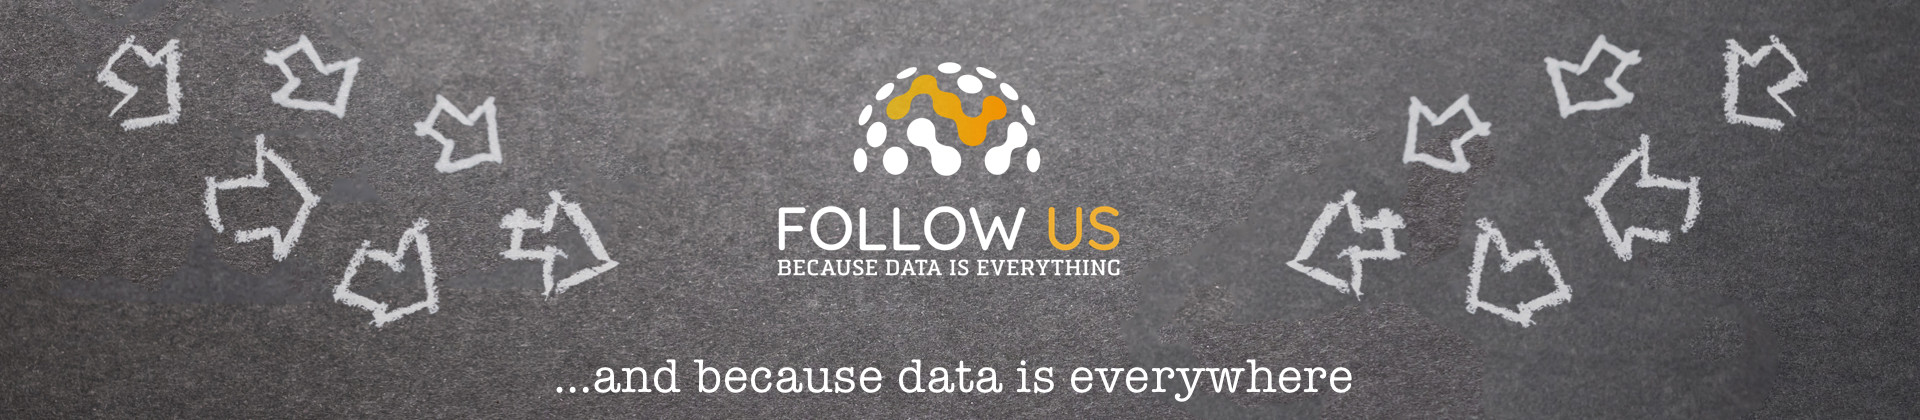 and because data is everywhere